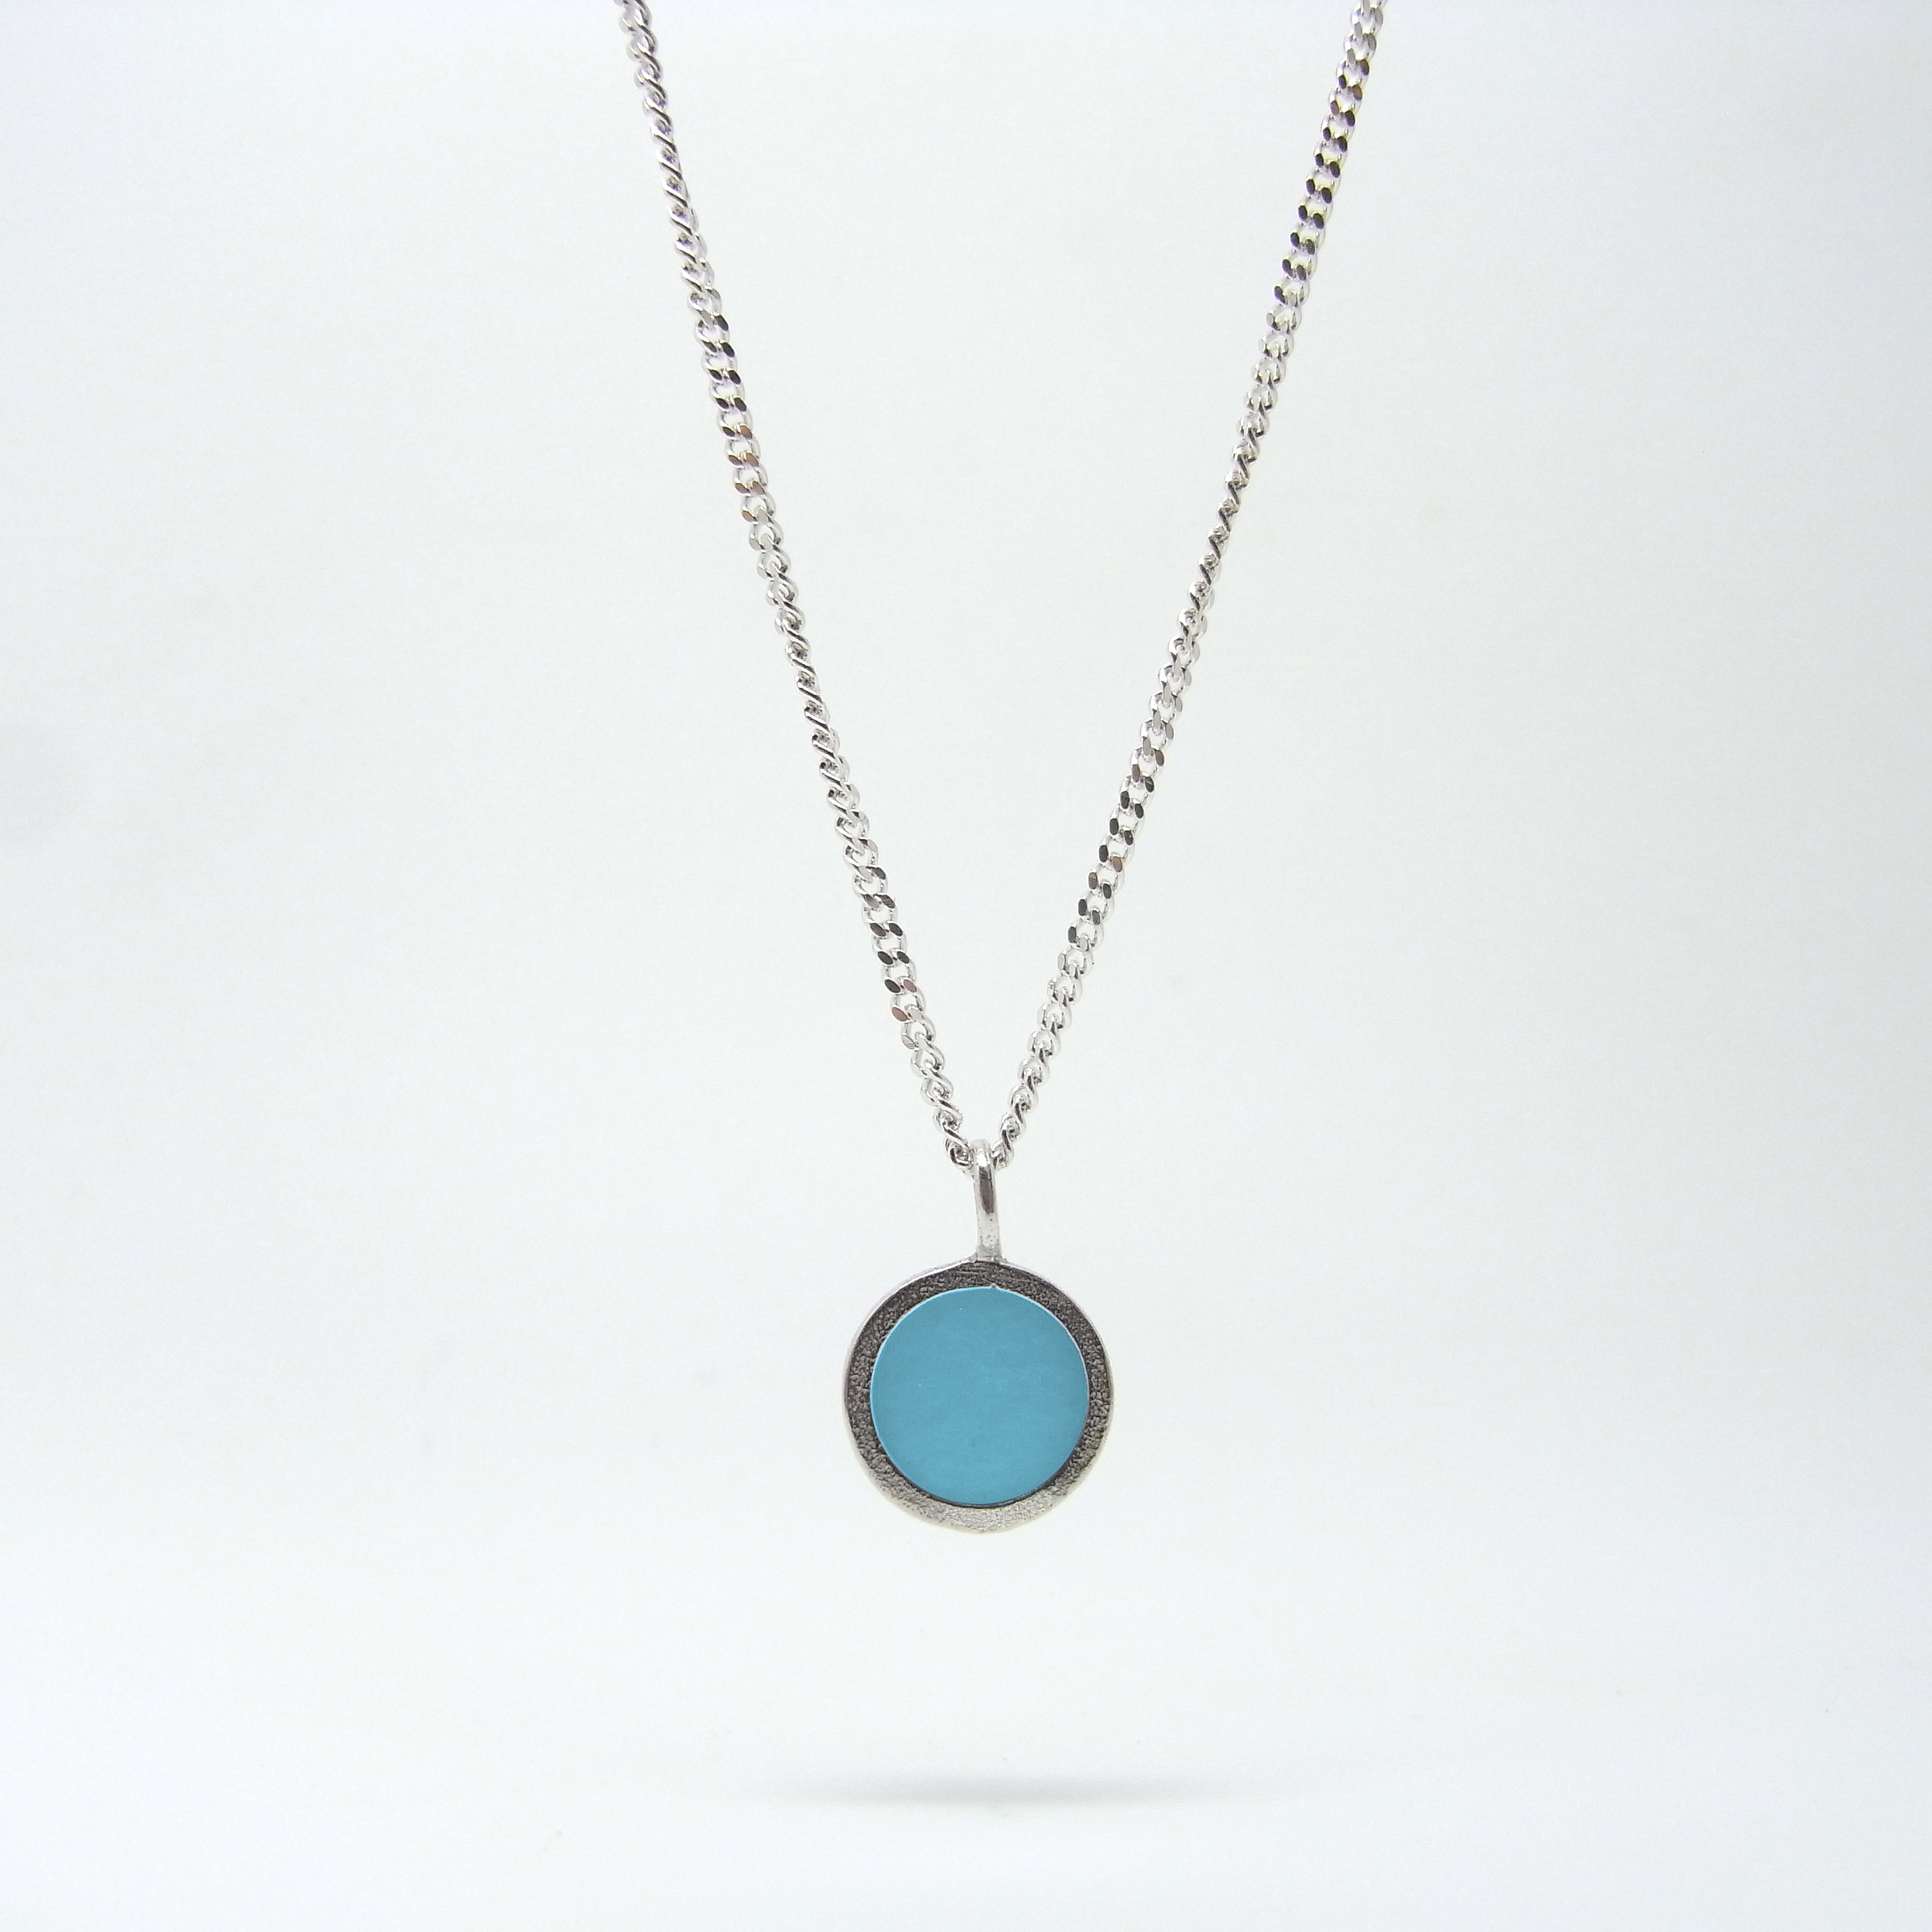 SALE - Small Coloured Dot Necklace Baby Blue